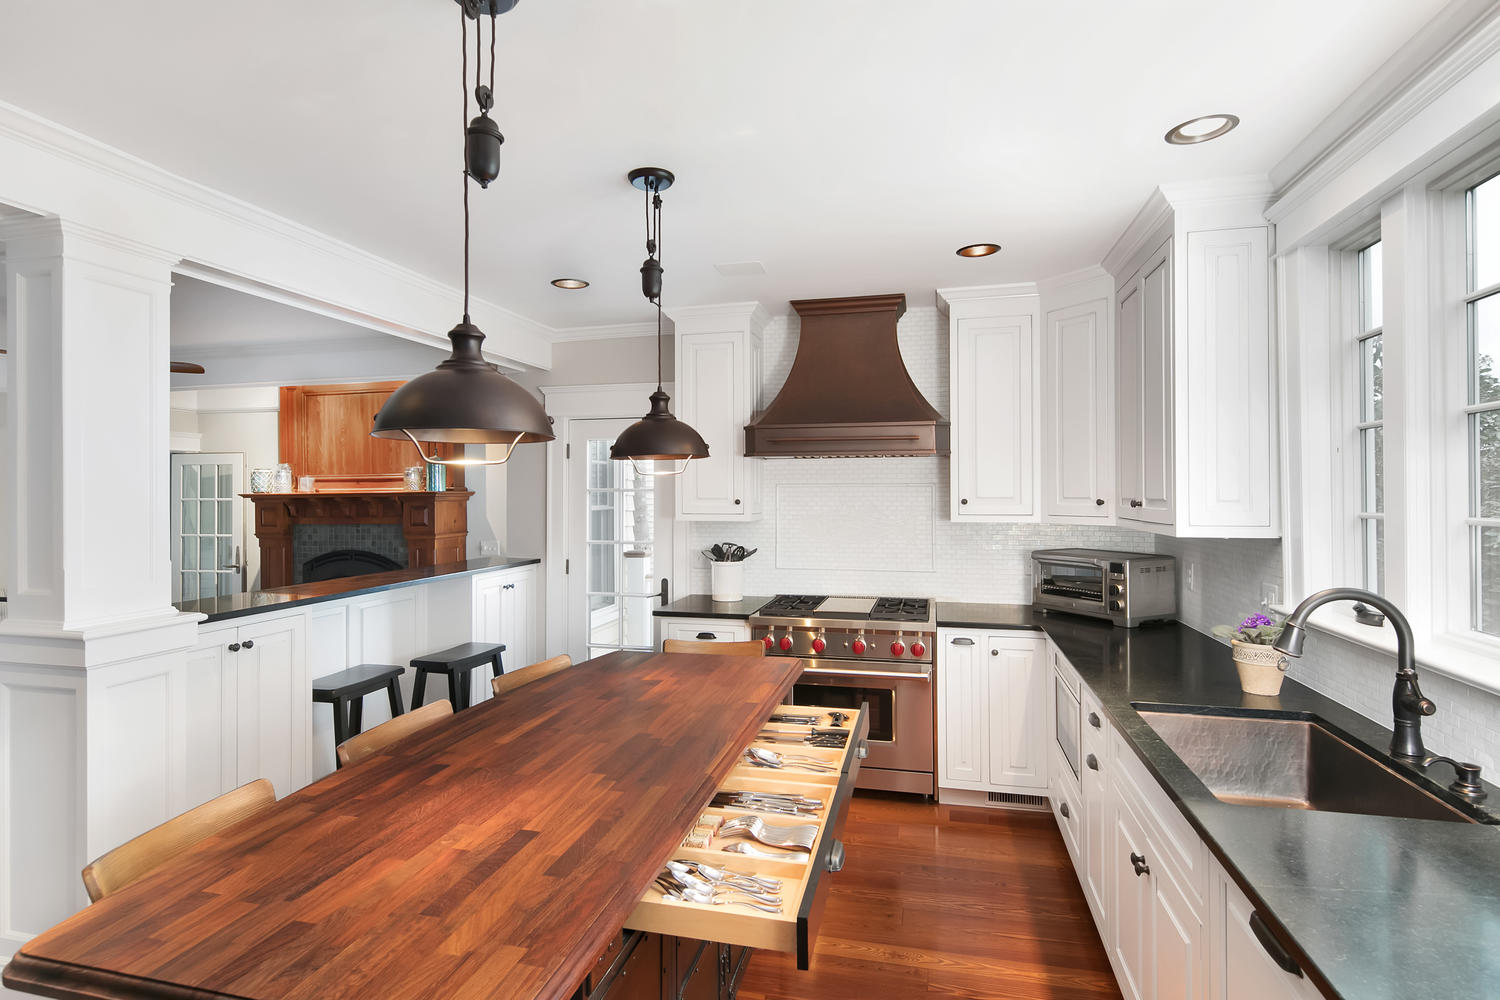 Modern vintage inset avon by the sea new jersey by design line kitchens - Design line kitchens ...